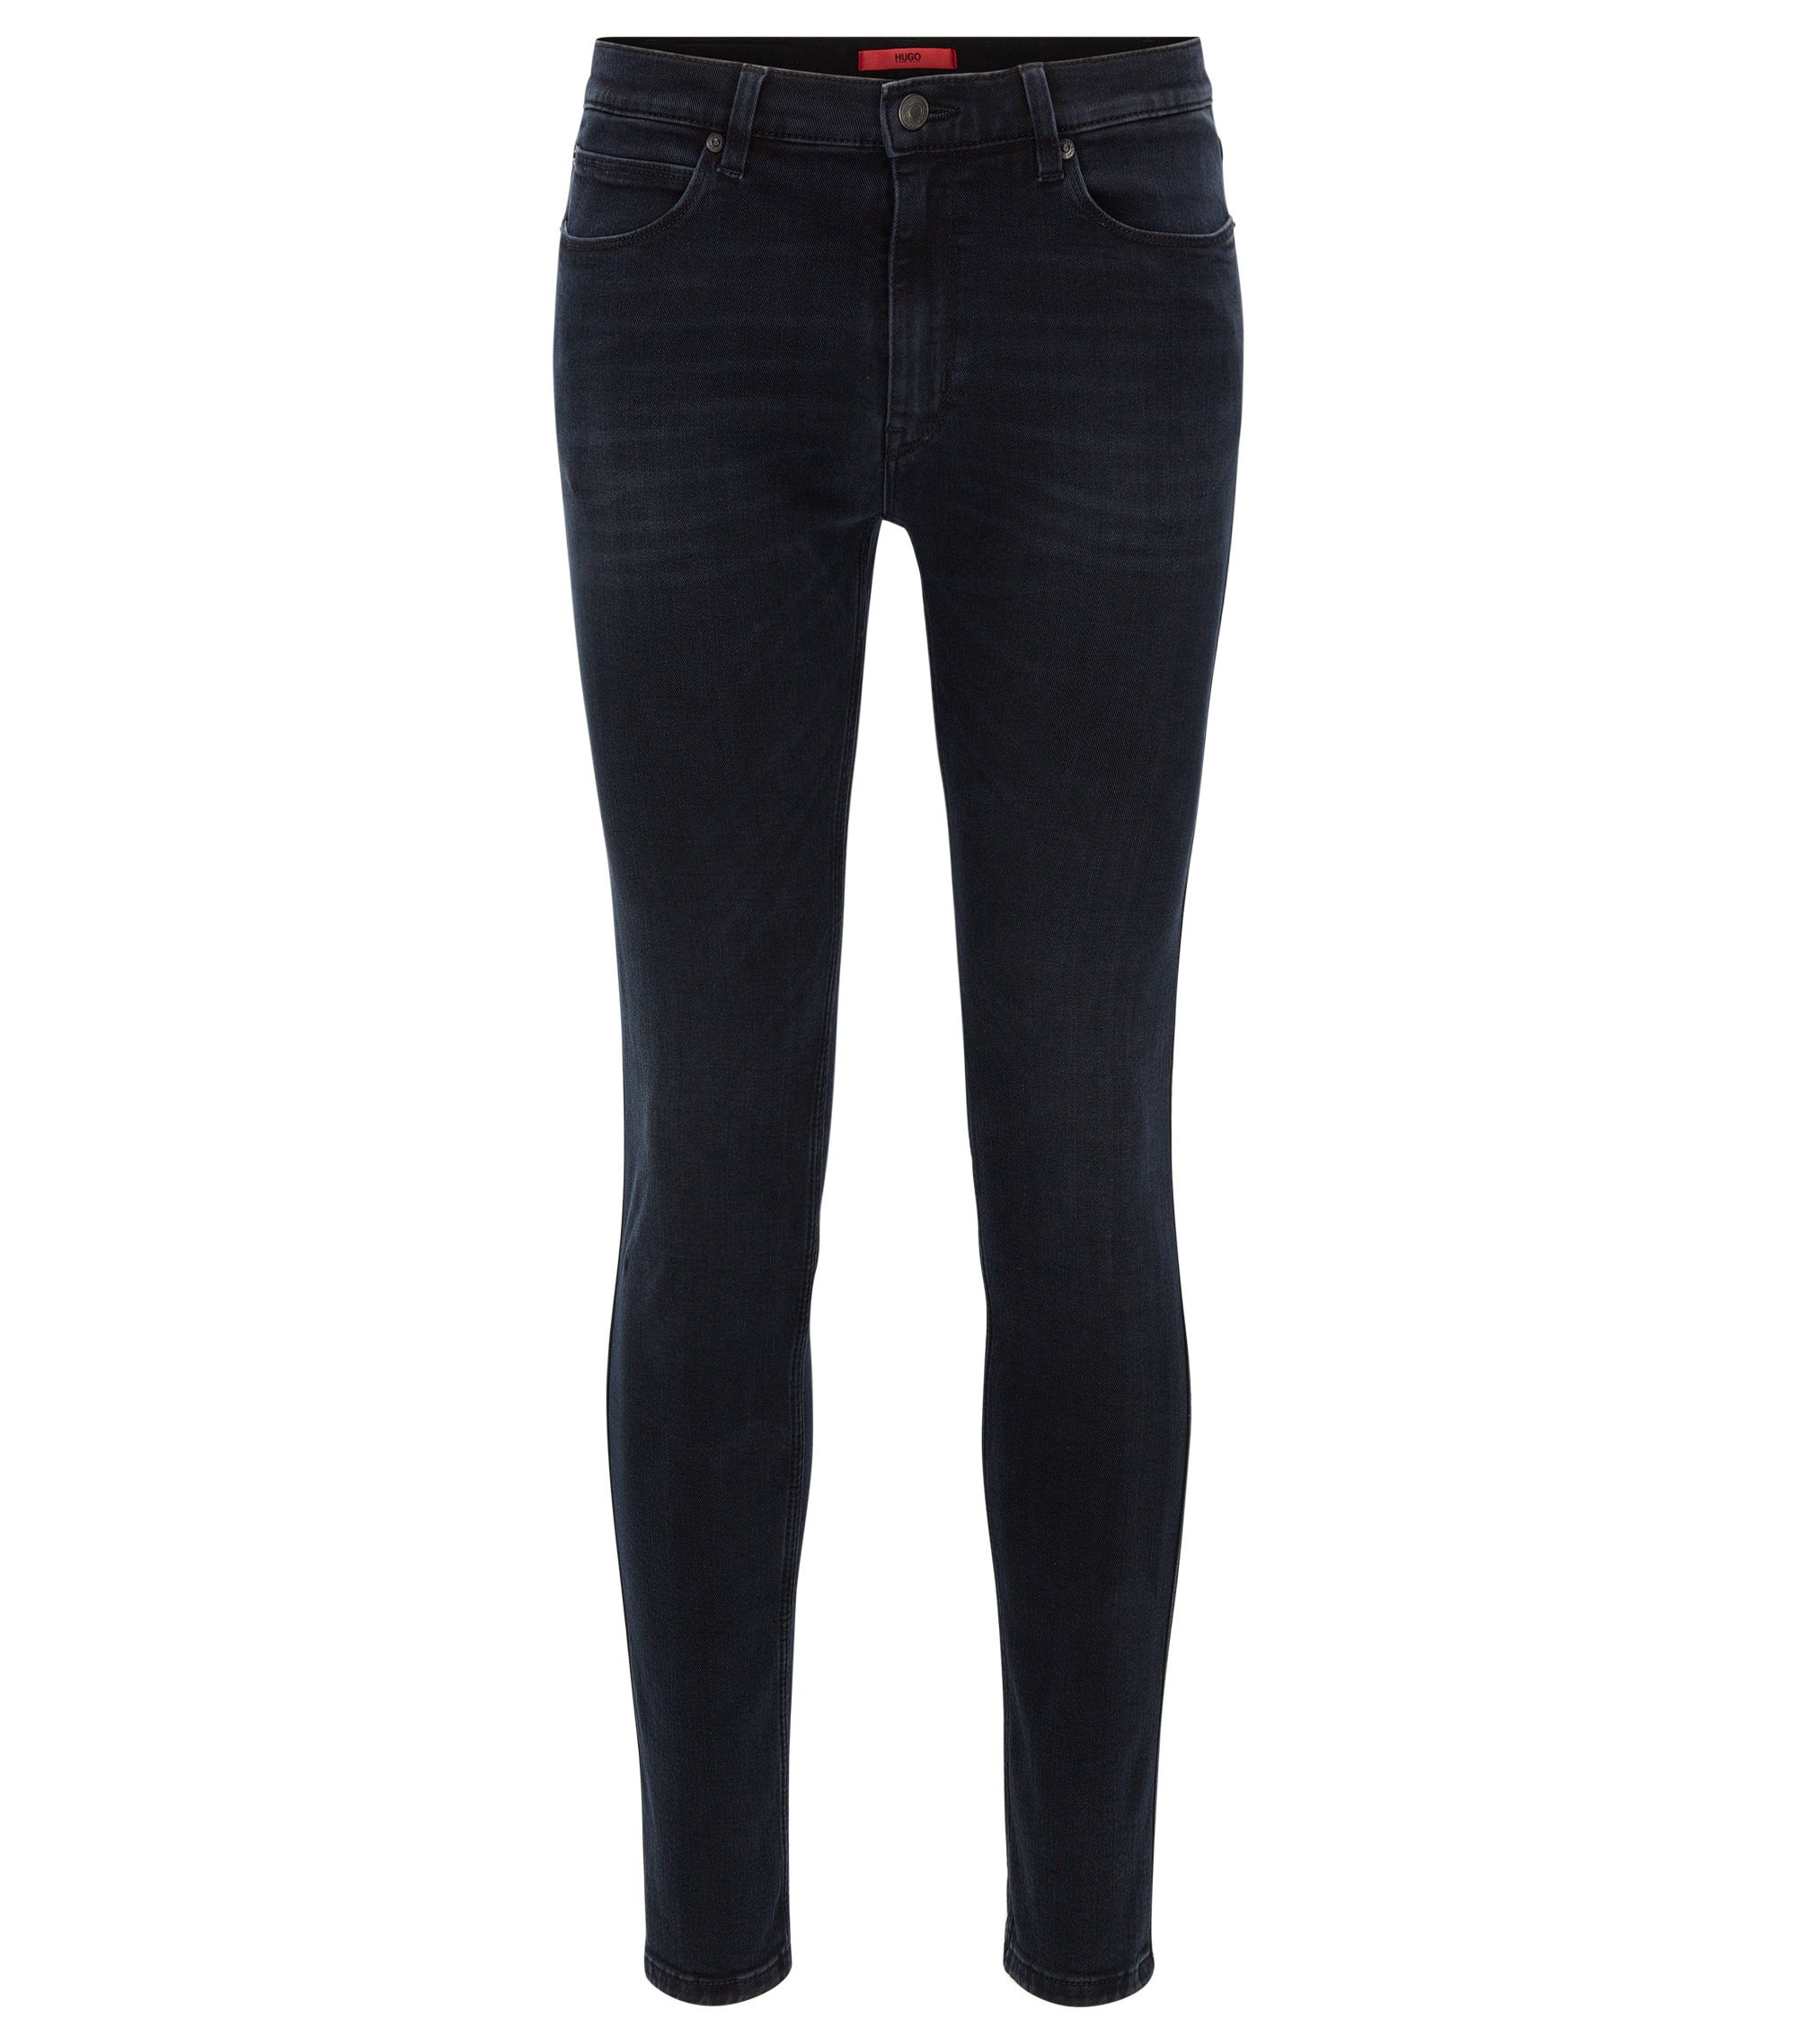 Skinny-Fit Jeans aus Stretch-Denim, Schwarz